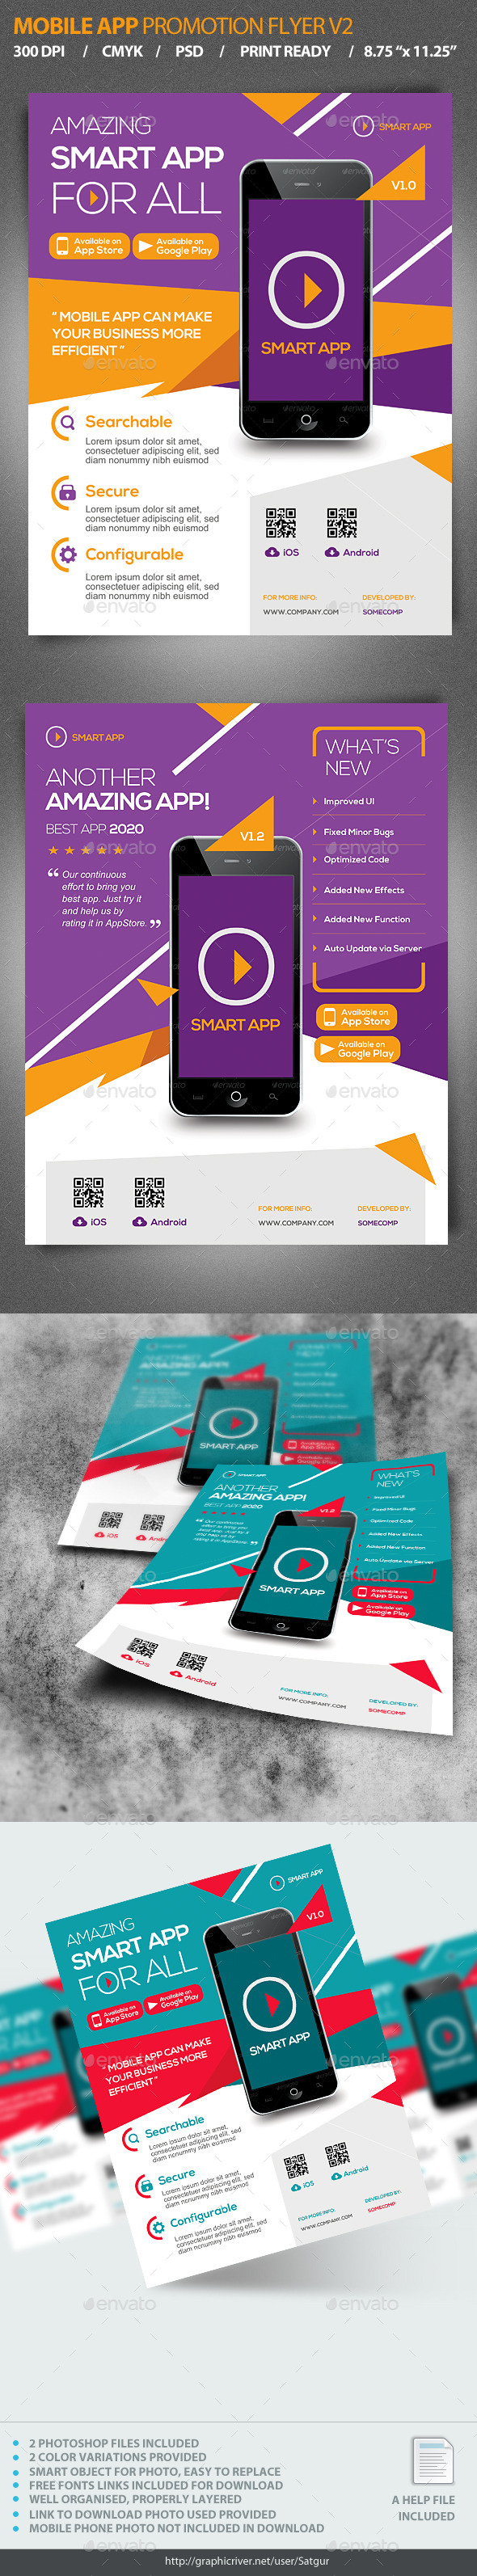 Mobile App Promotion Flyer V2  - Corporate Flyers